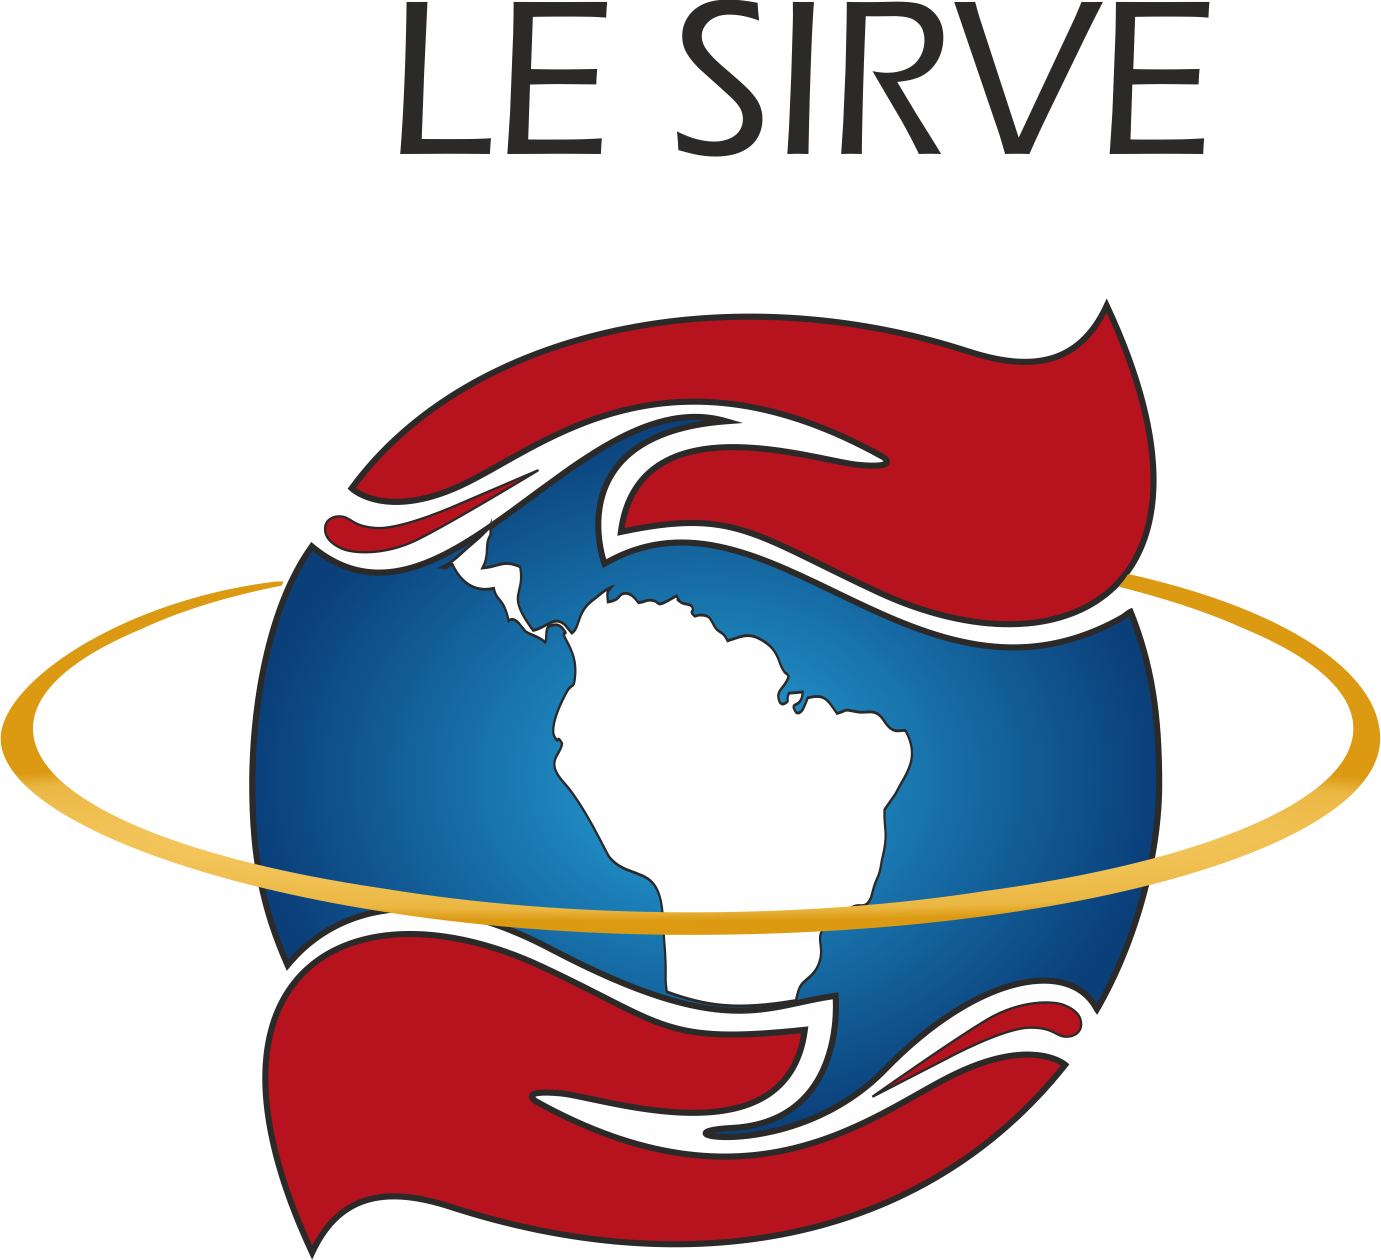 logo le sirve PNG